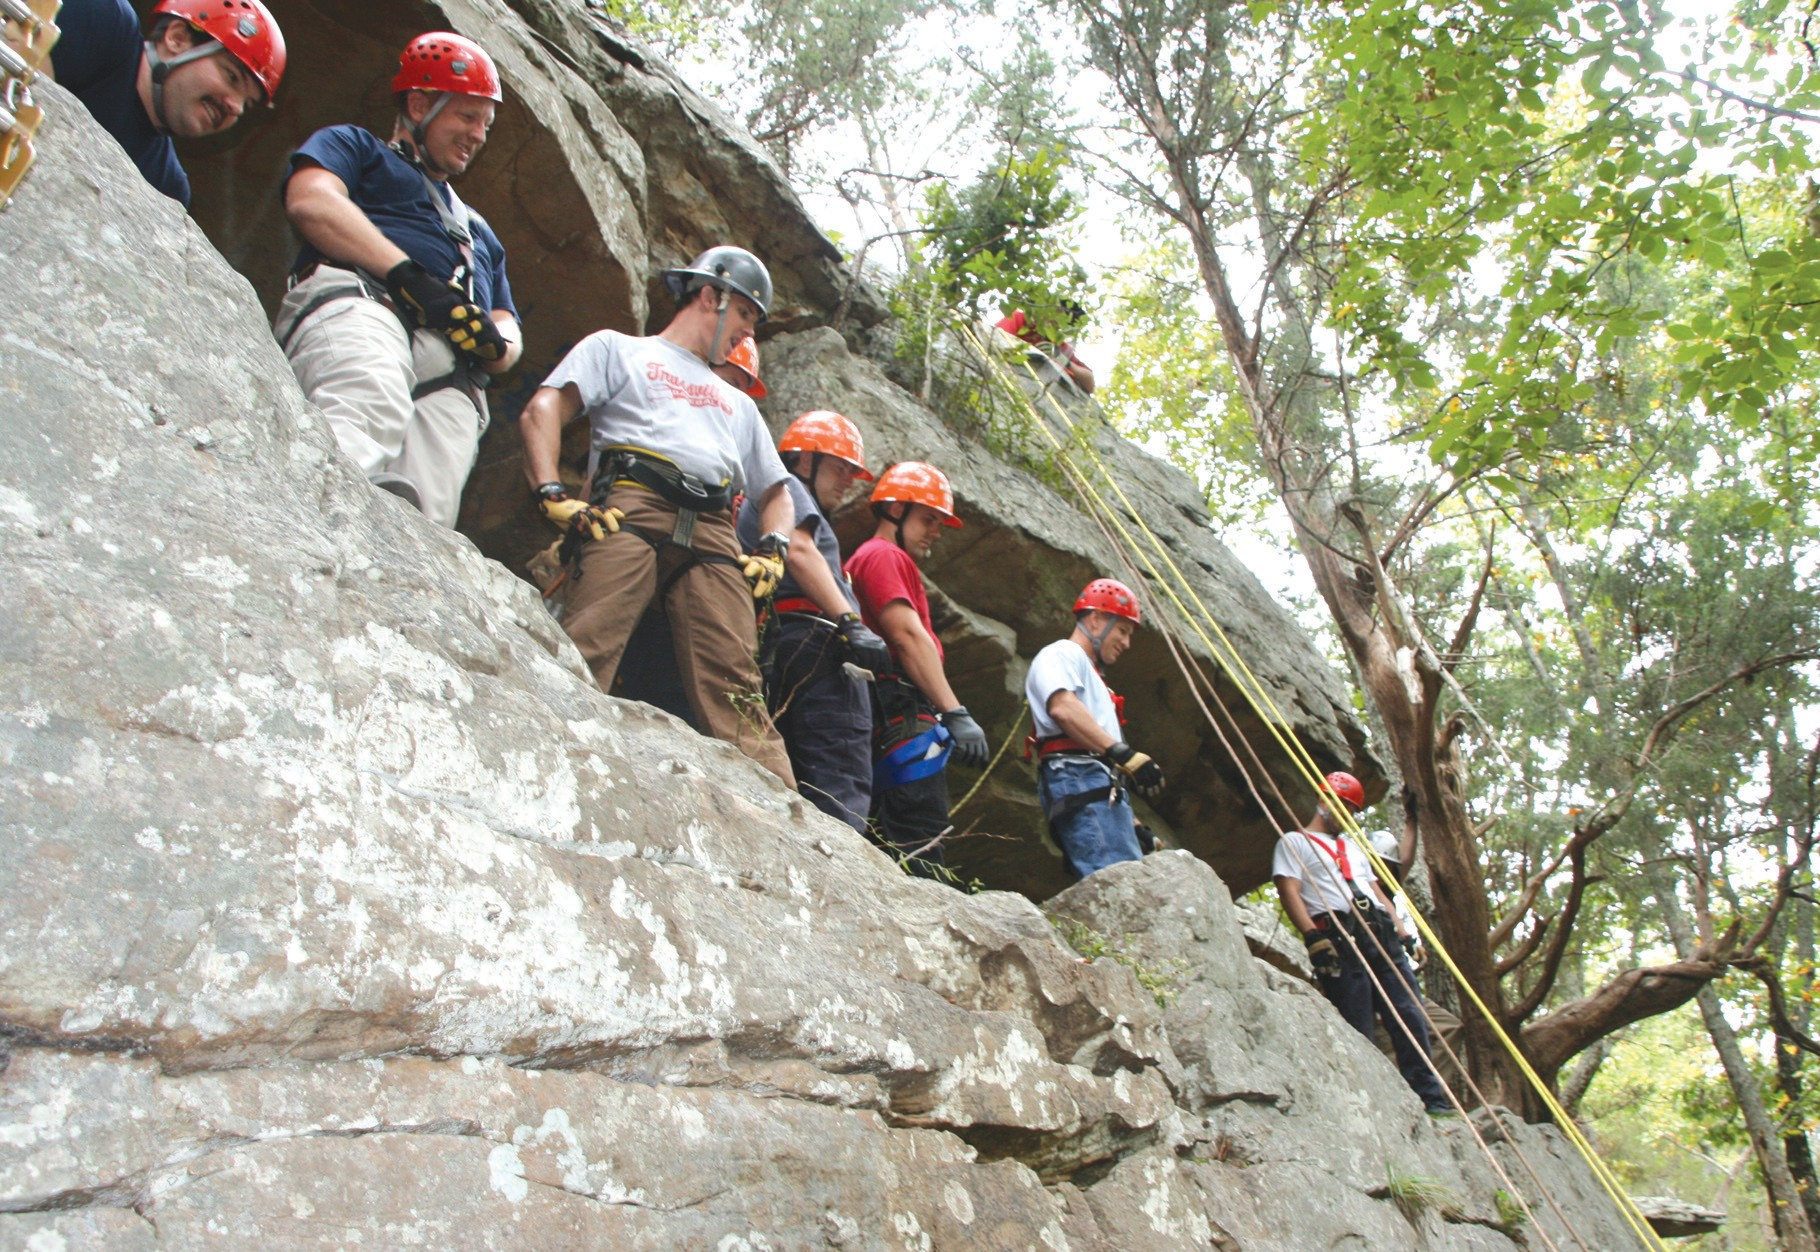 Fourteen participants from eight fire and rescue departments, including Oneonta, Leeds, and Montgomery, learned the ins and outs of rope rescue last week. Conducted at Palisades Park, training for rescue personnel included rescue rappelling, third man rescue, uses and limitations of equipment, and lowering systems, according to Oneonta Fire Chief Arthur Willis. – Nicole Singleton